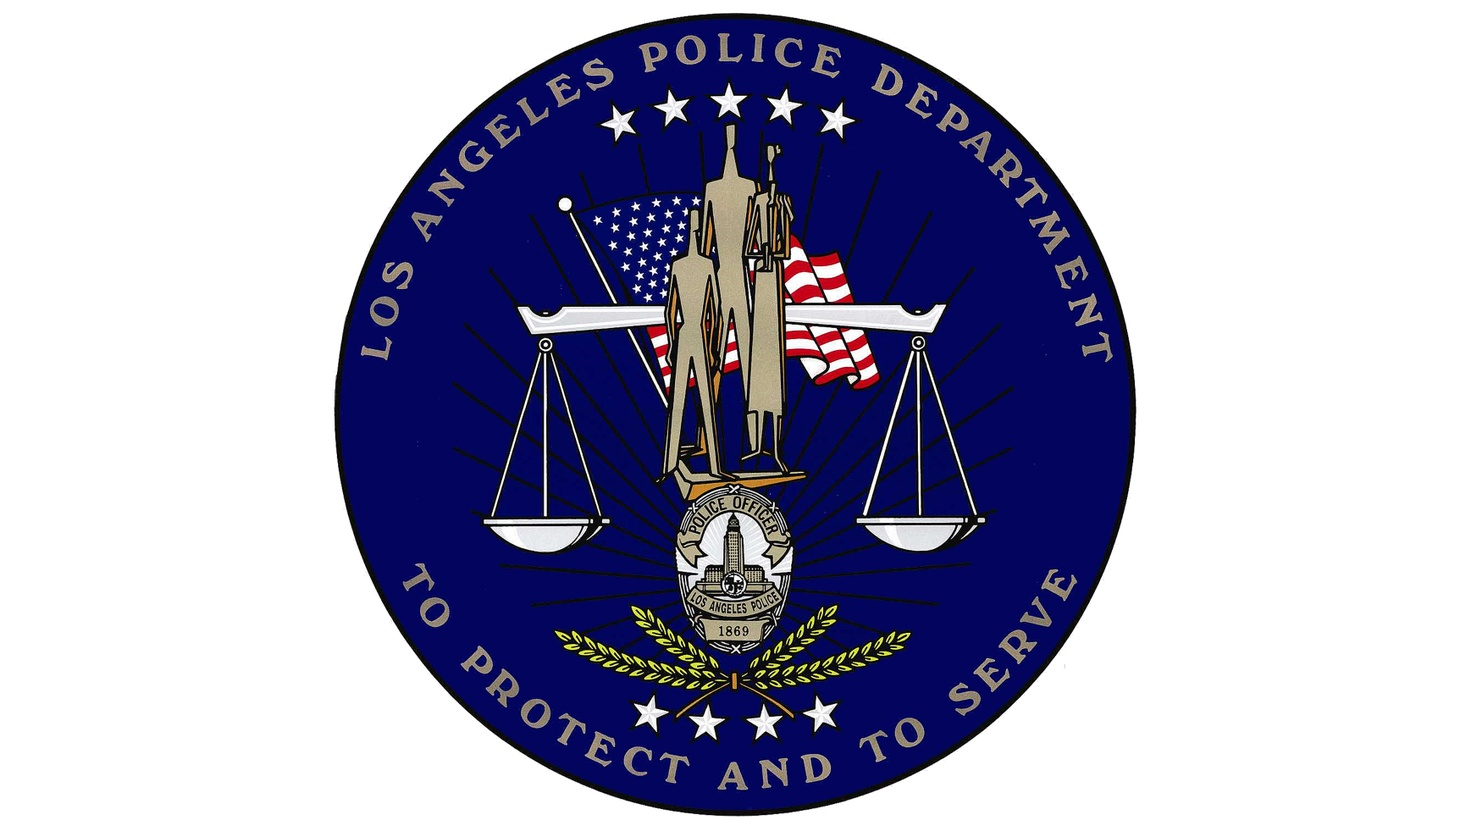 In one year, The LAPD misclassified more than a thousand violent crimes as minor offenses. Is the LAPD deliberately manipulating the crime stats to make the city look safer? And why don't women get to direct more studio movies?